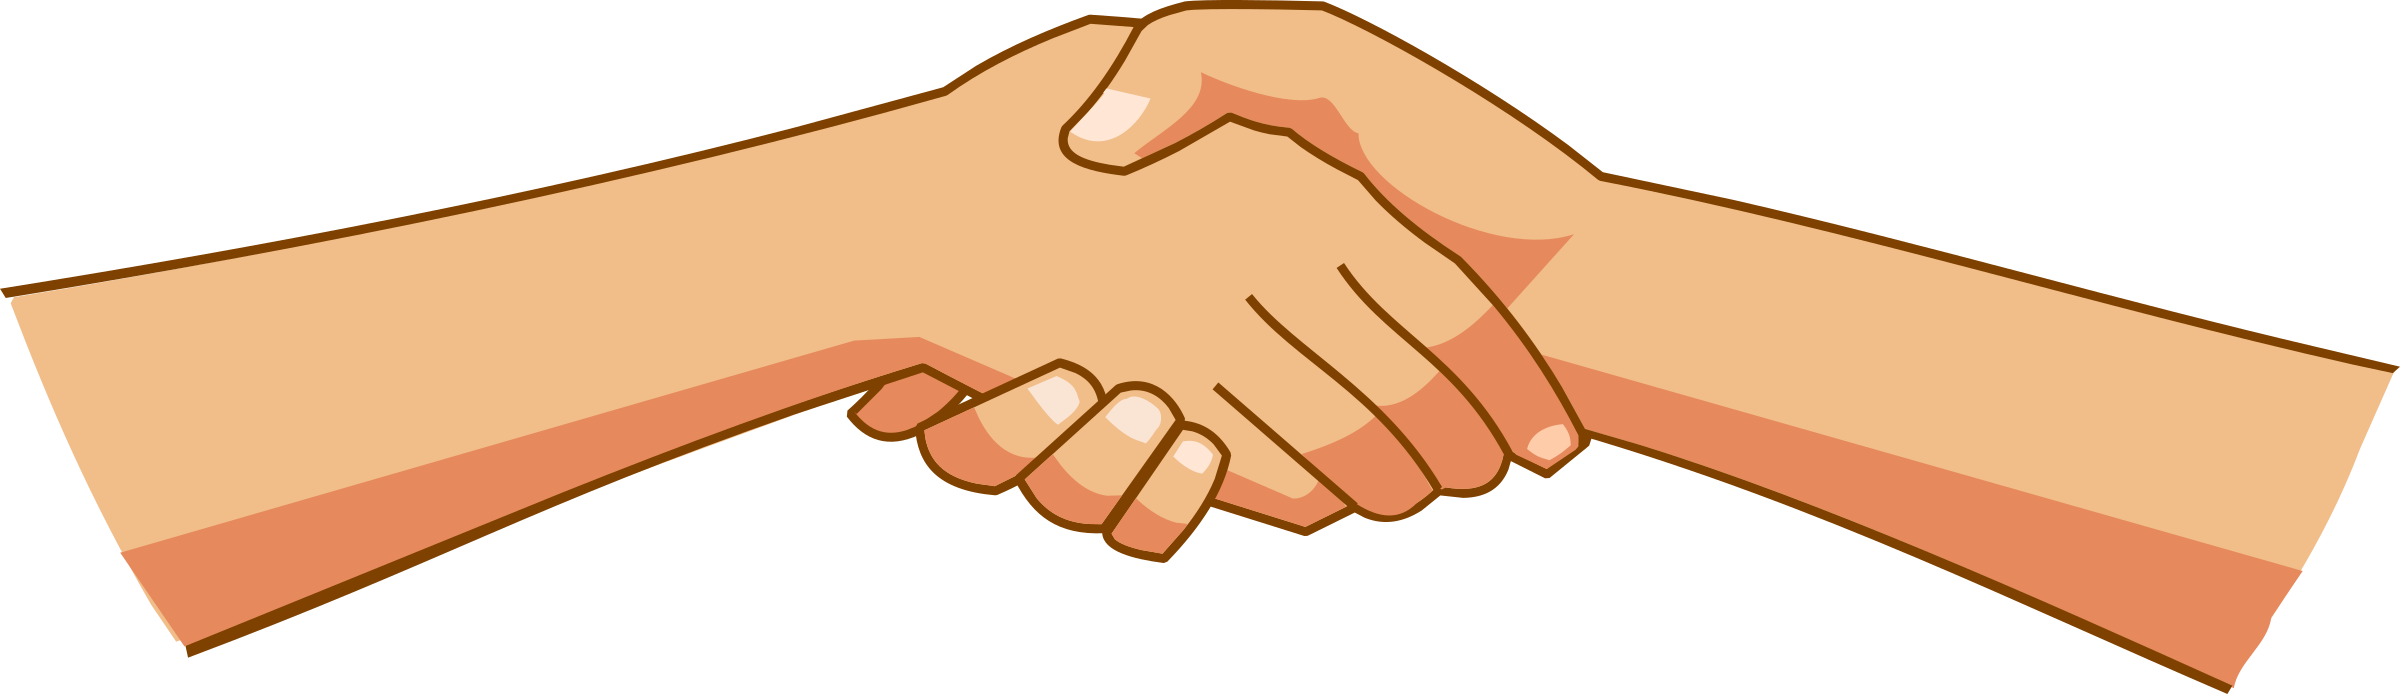 Shaking hands big image. Fingers clipart shake